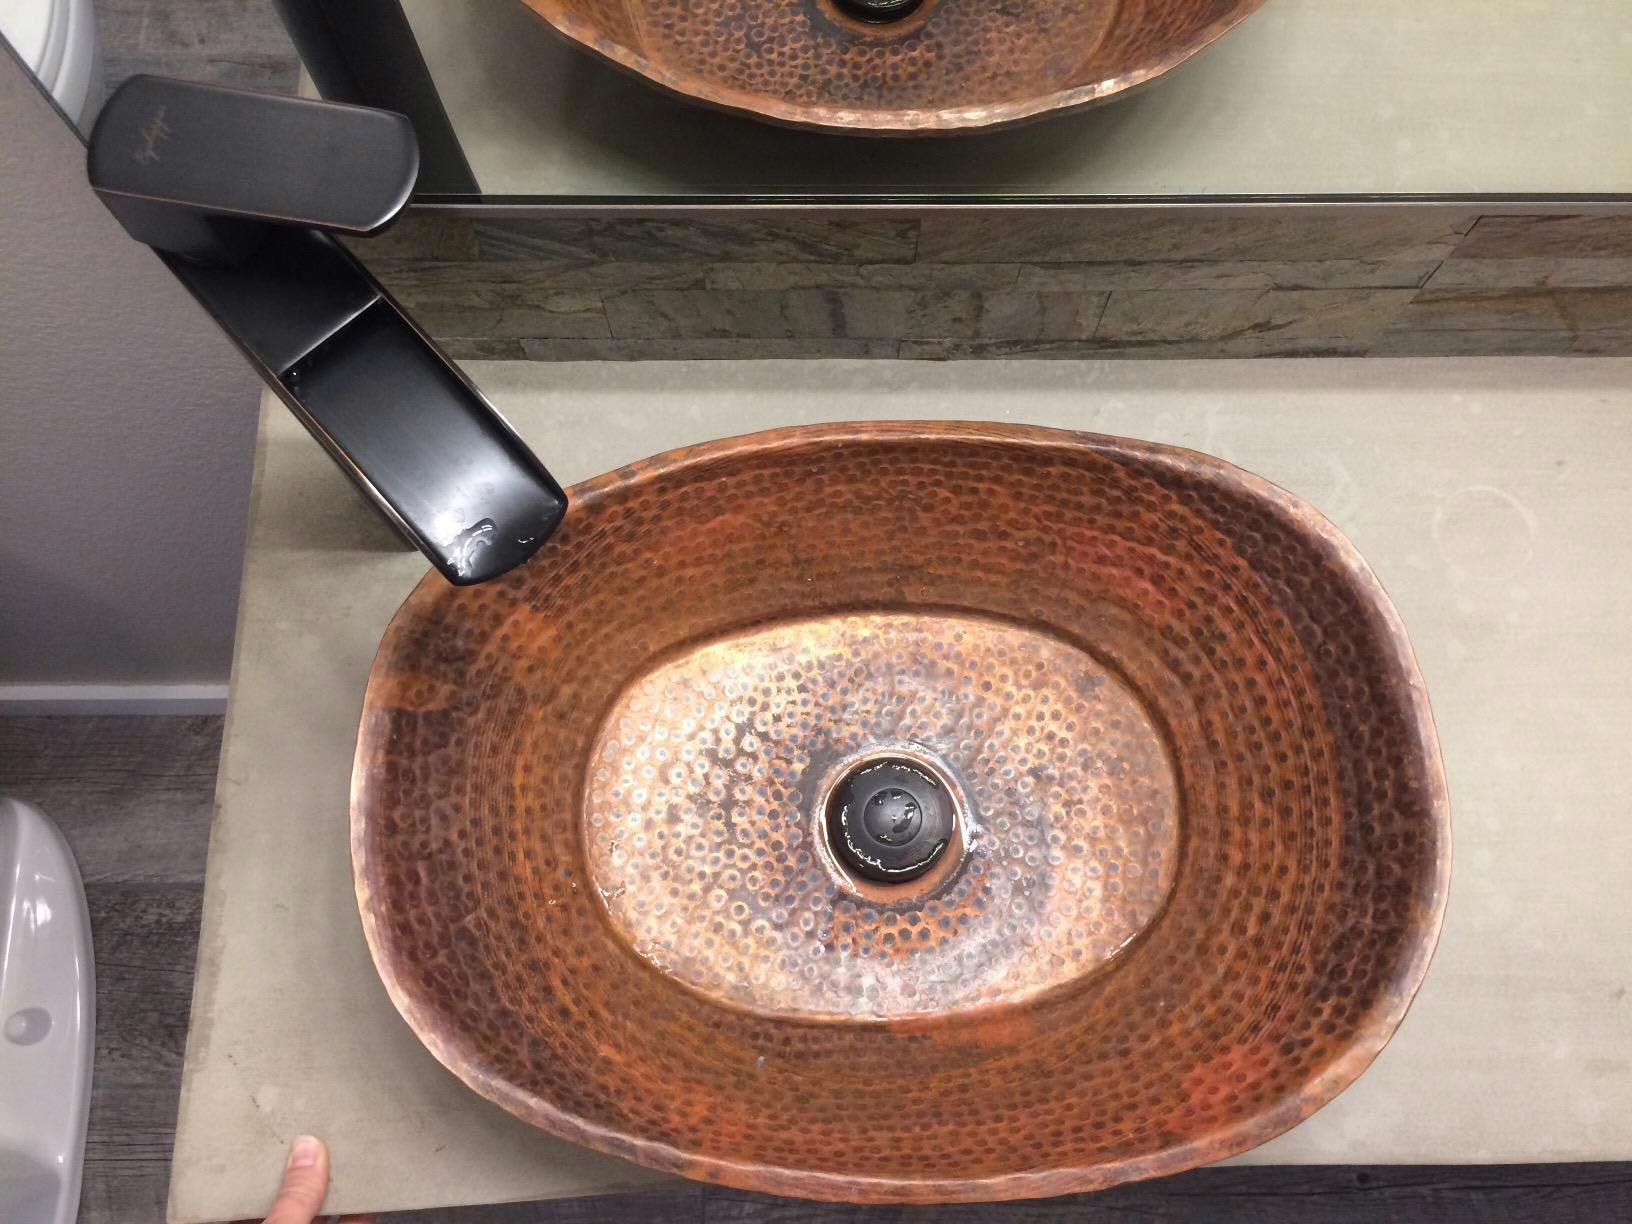 Egypt gift shops Rustic Industrial Style Bathtub Bath Tub Boat Shape Pure Natural Copper Bathroom Vessel Bowl Wash Basin Toilet Outdoors Indoors Shower Construction Renovation Remodel Upgrade Revival